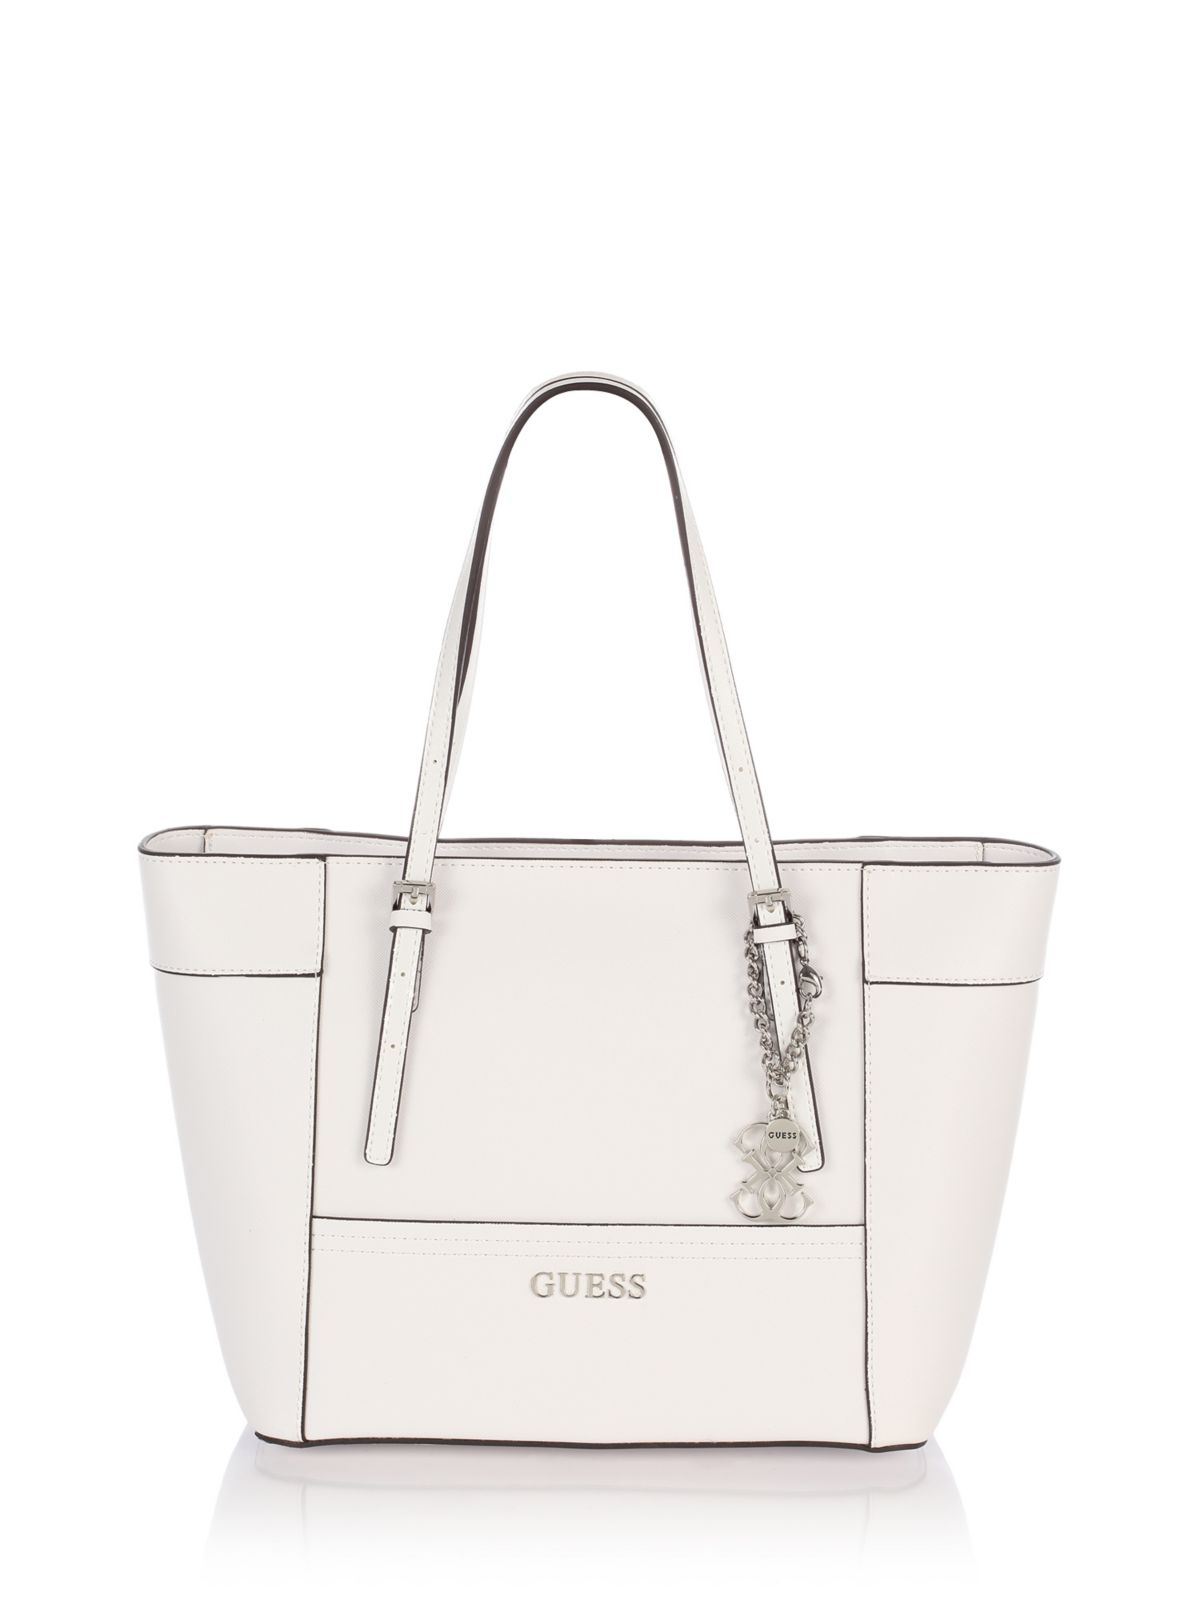 Guess Delaney Small Clic Tote Bag In White Lyst